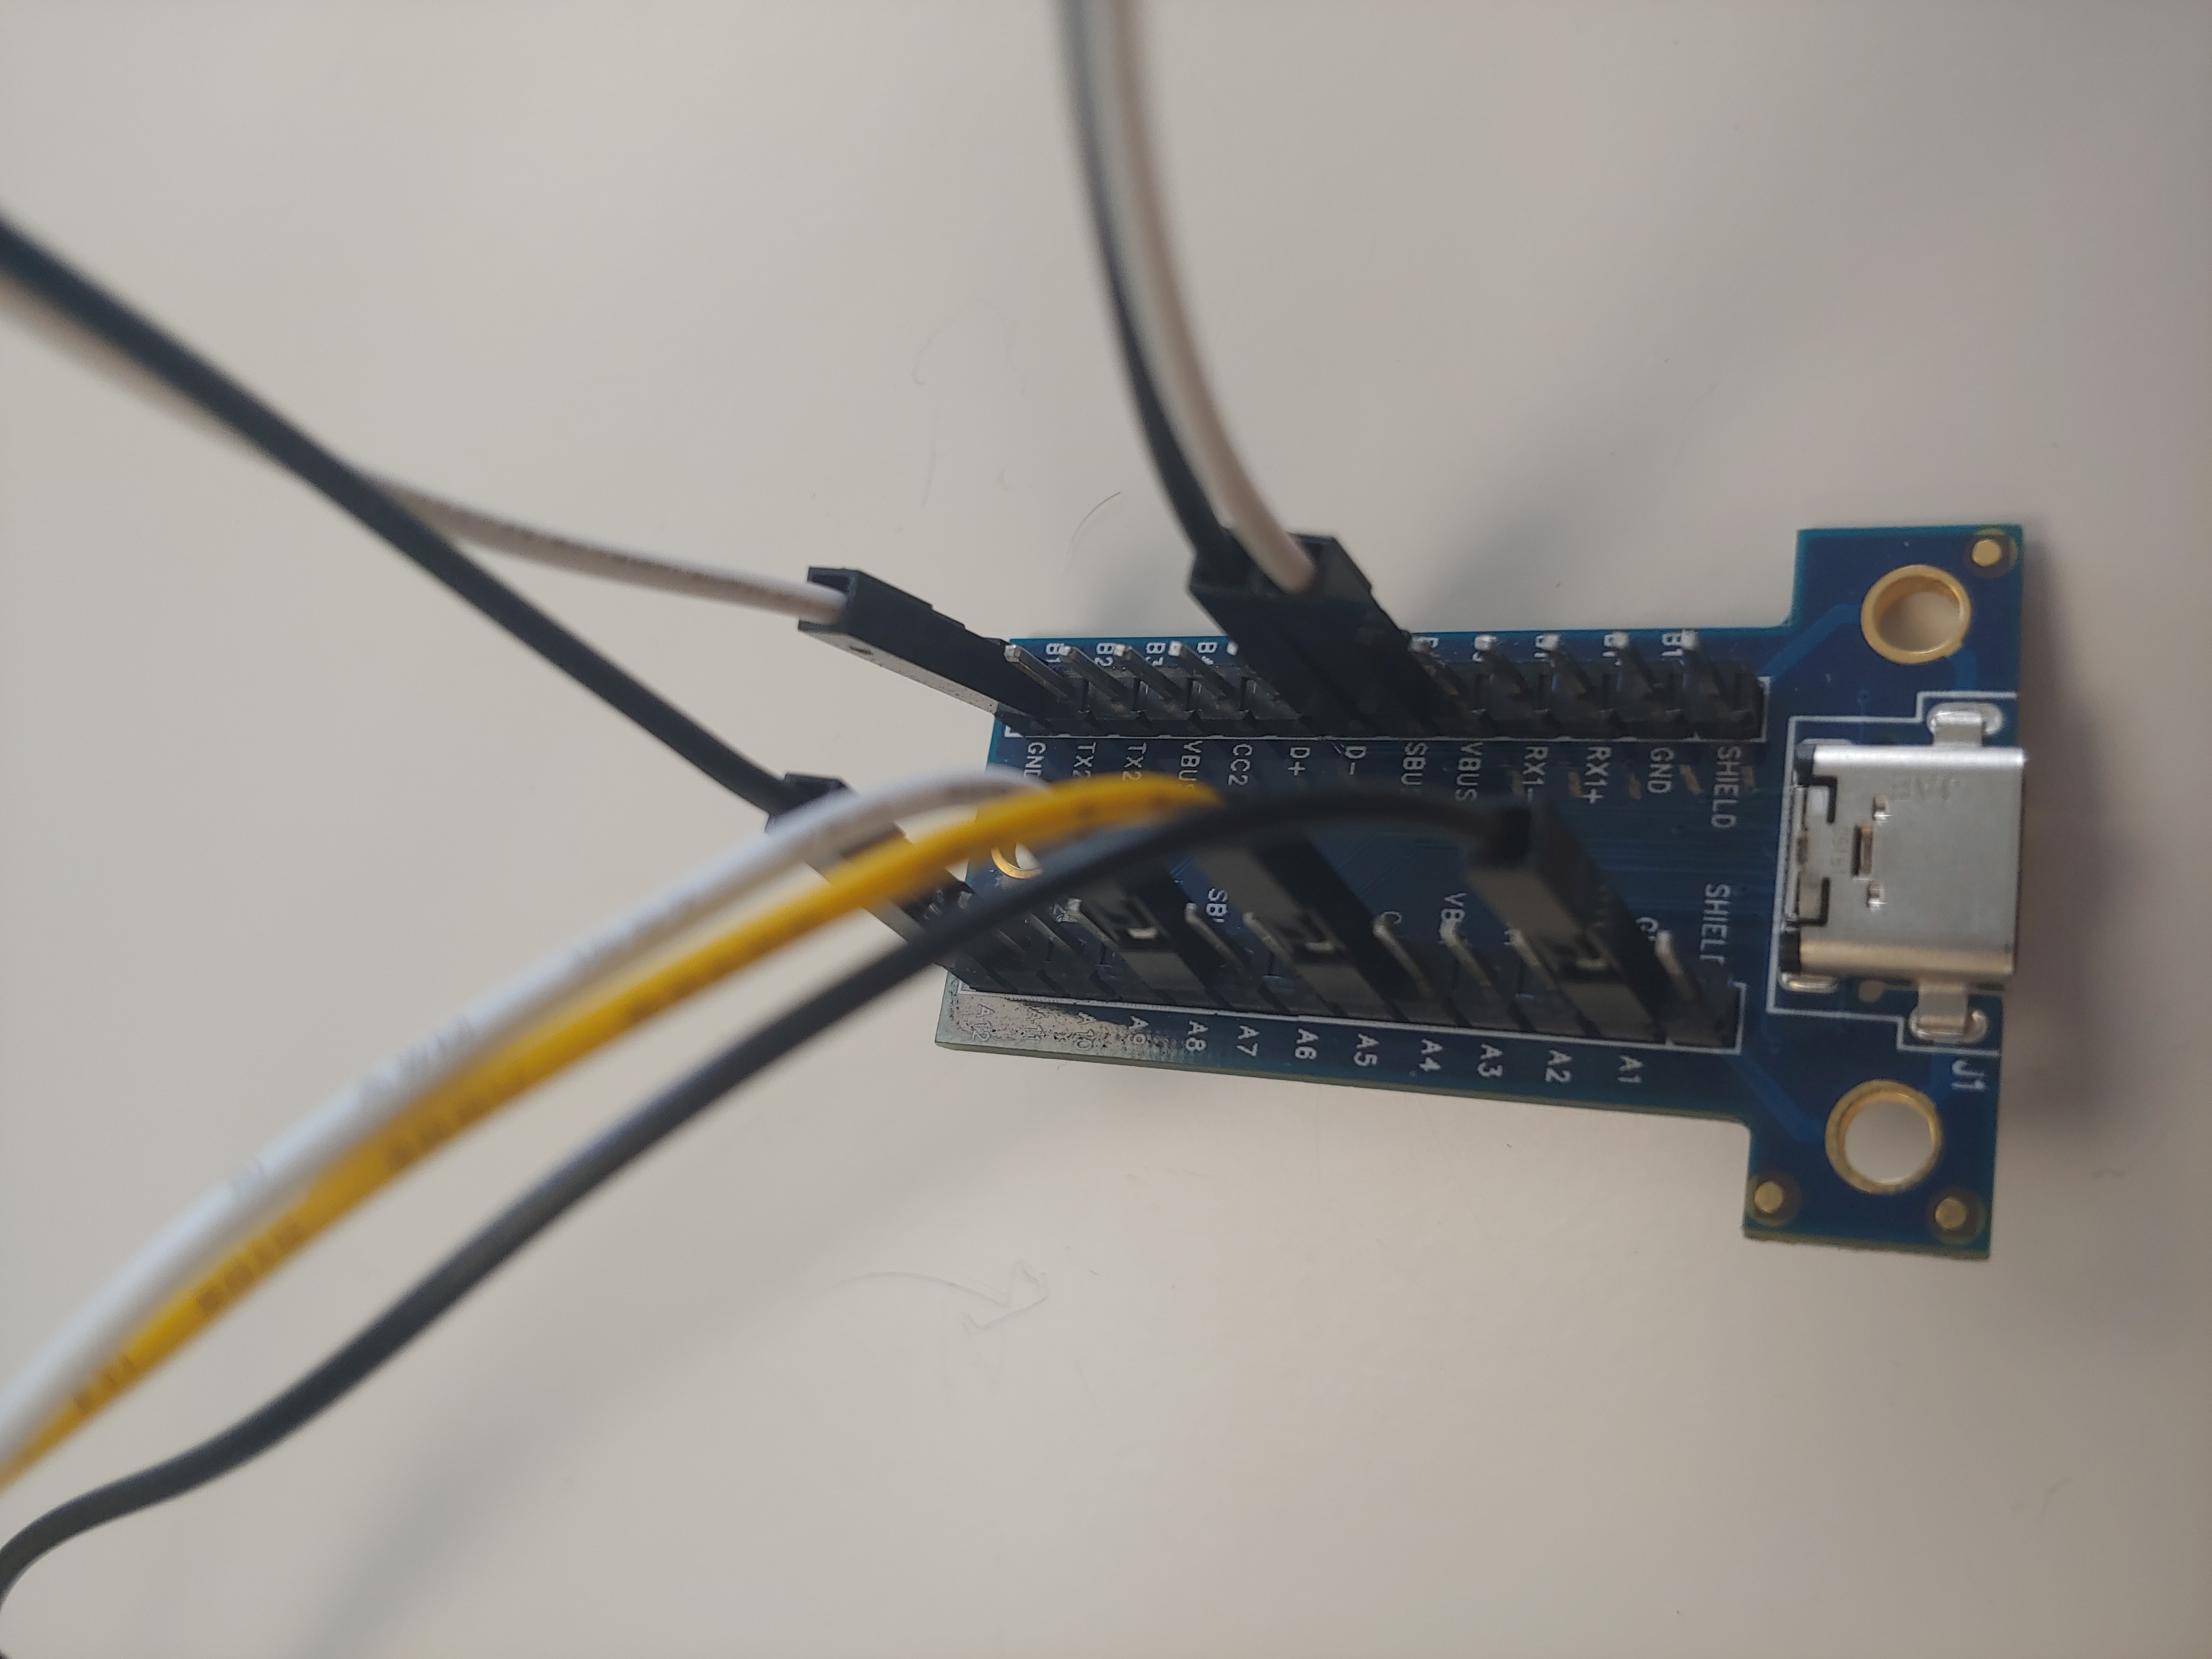 The UART connection (USB-ttl FTDI cable)